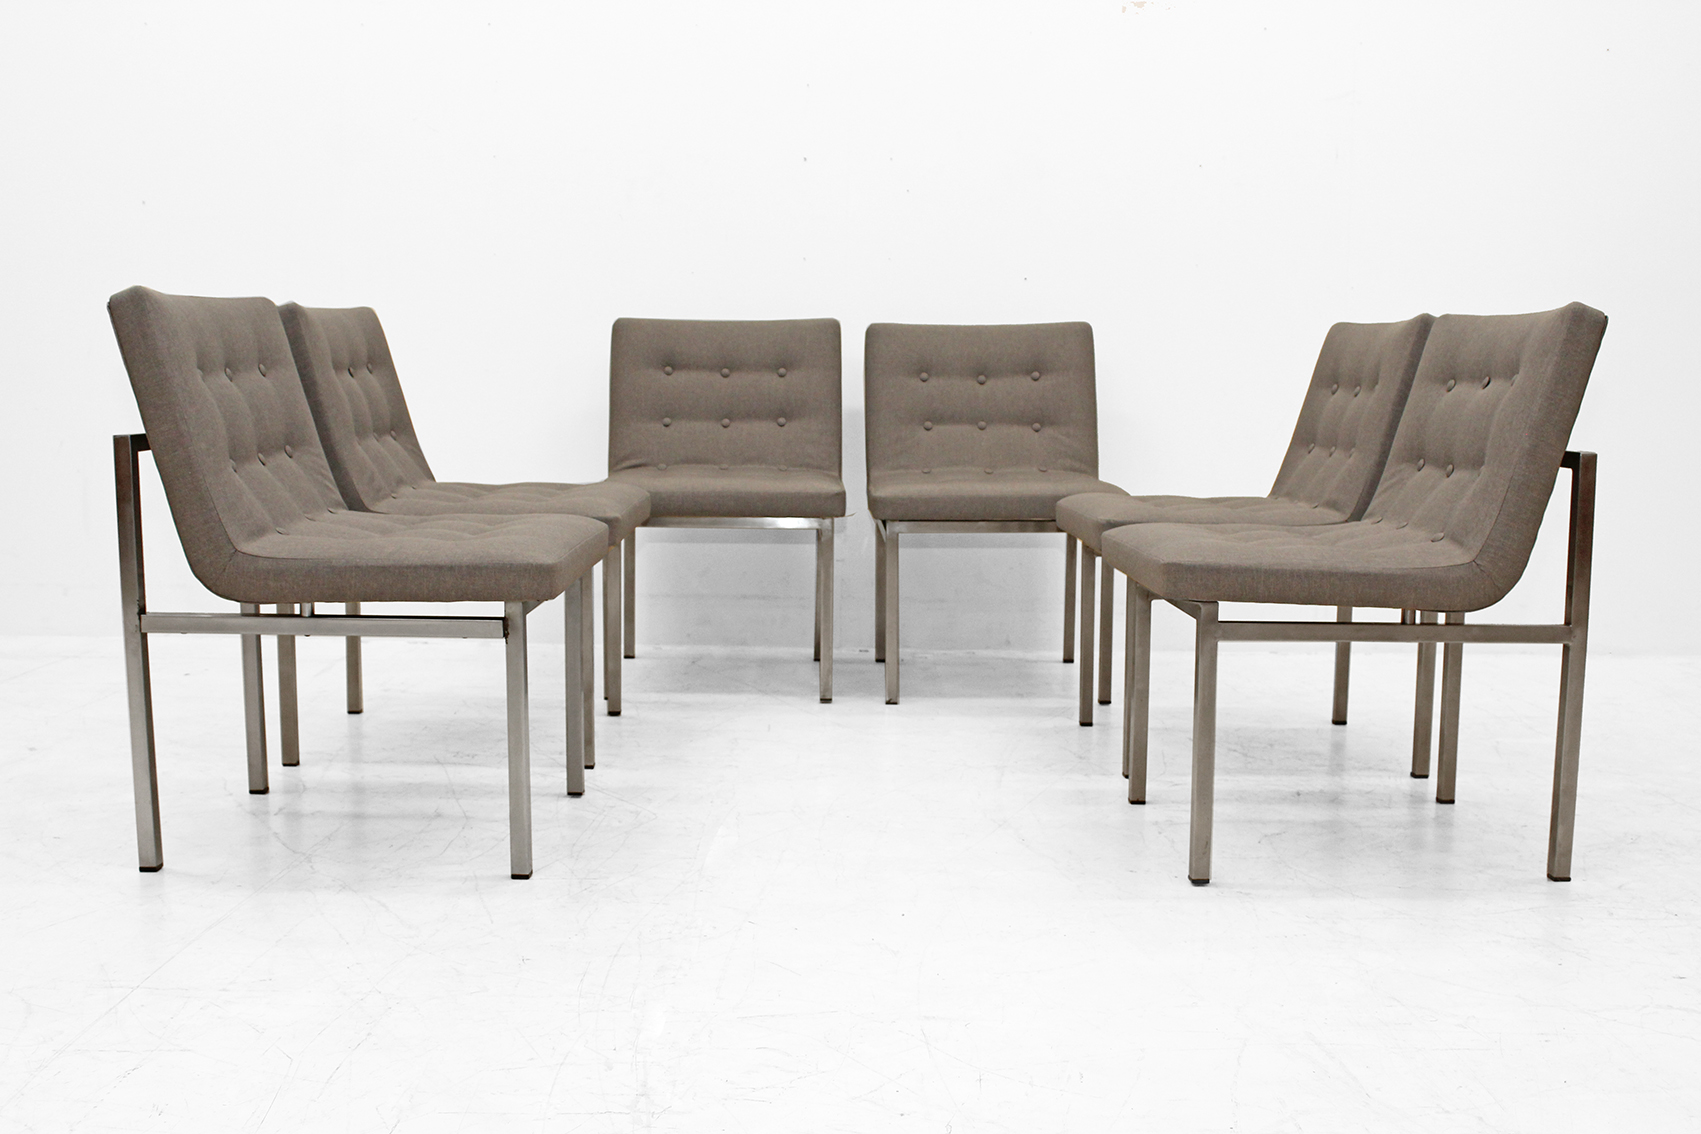 set of six massive chairs designed by alfred henrickx